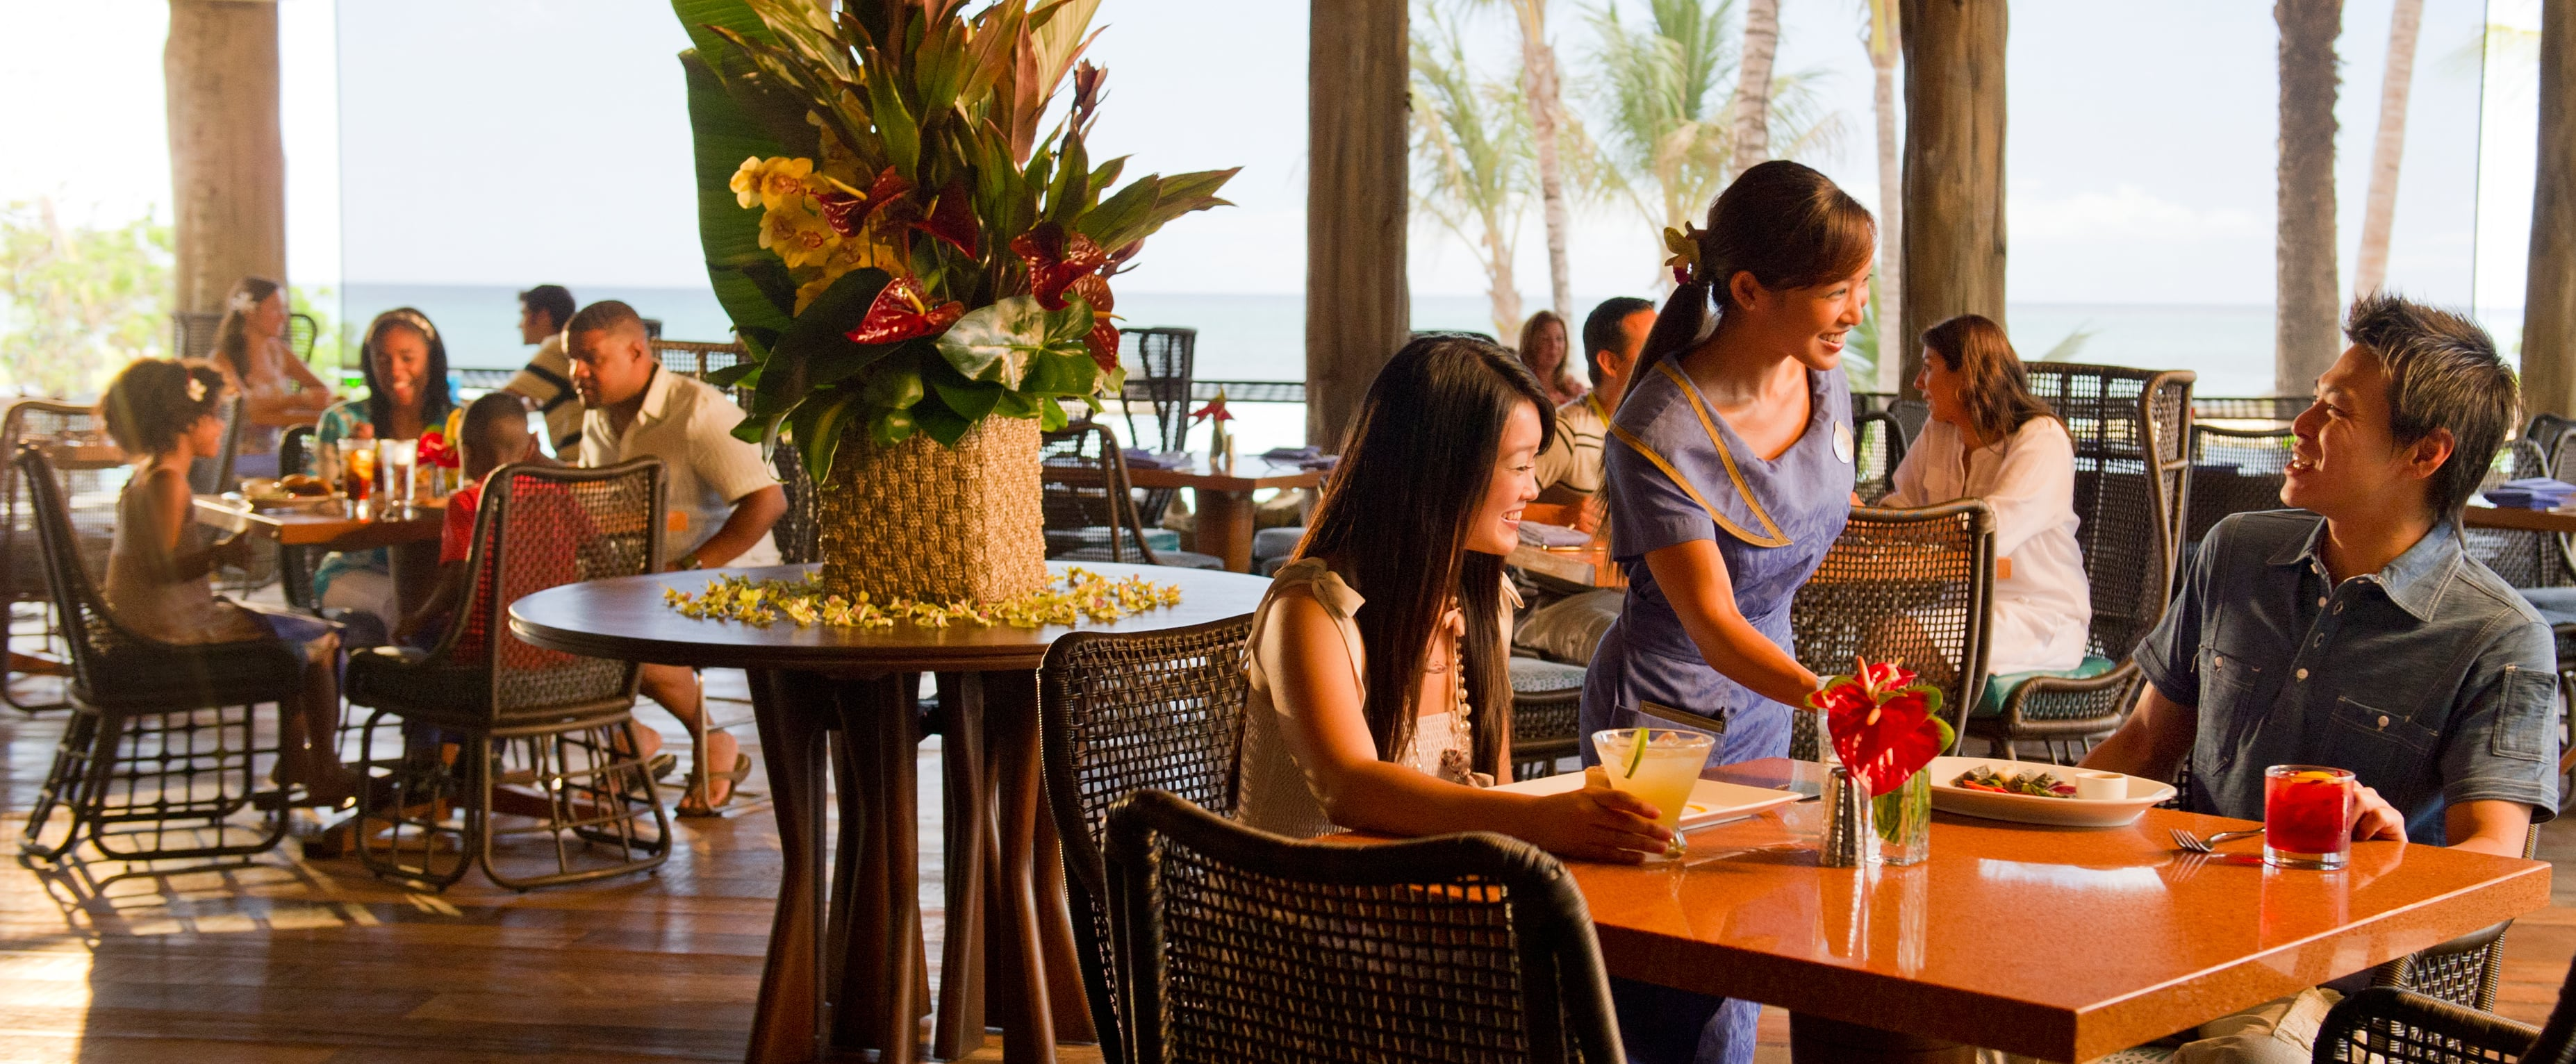 A friendly server interacts with a couple seated on a covered patio with a tropical floral arrangement